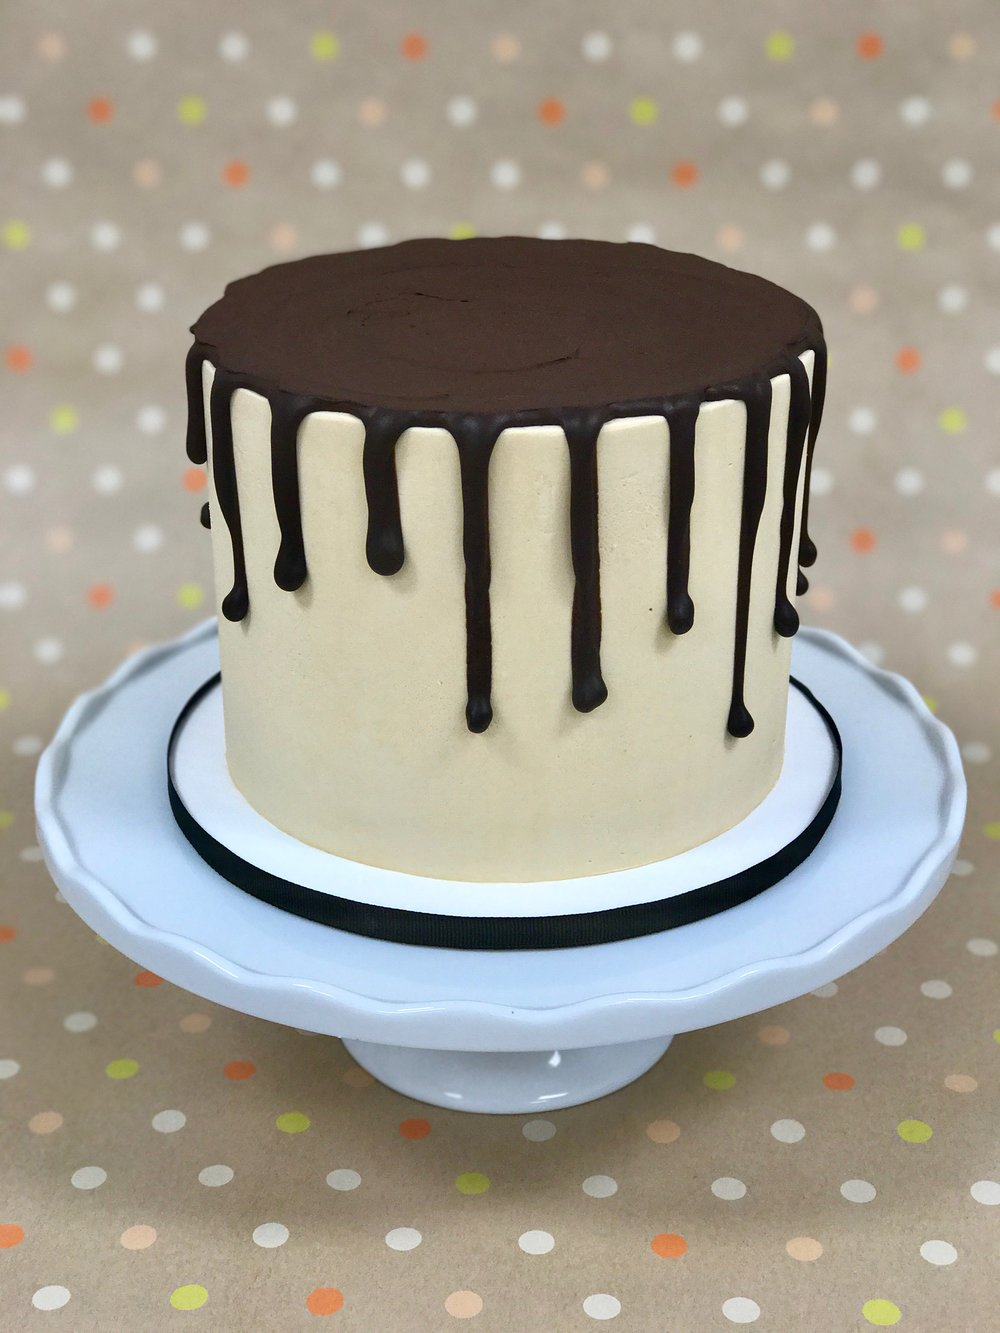 Chocolate Salted Caramel - Cake: ChocolateFilling: Salted Caramel ButtercreamFrosting: Salted Caramel Swiss Meringue Buttercream and Dark Chocolate Ganache